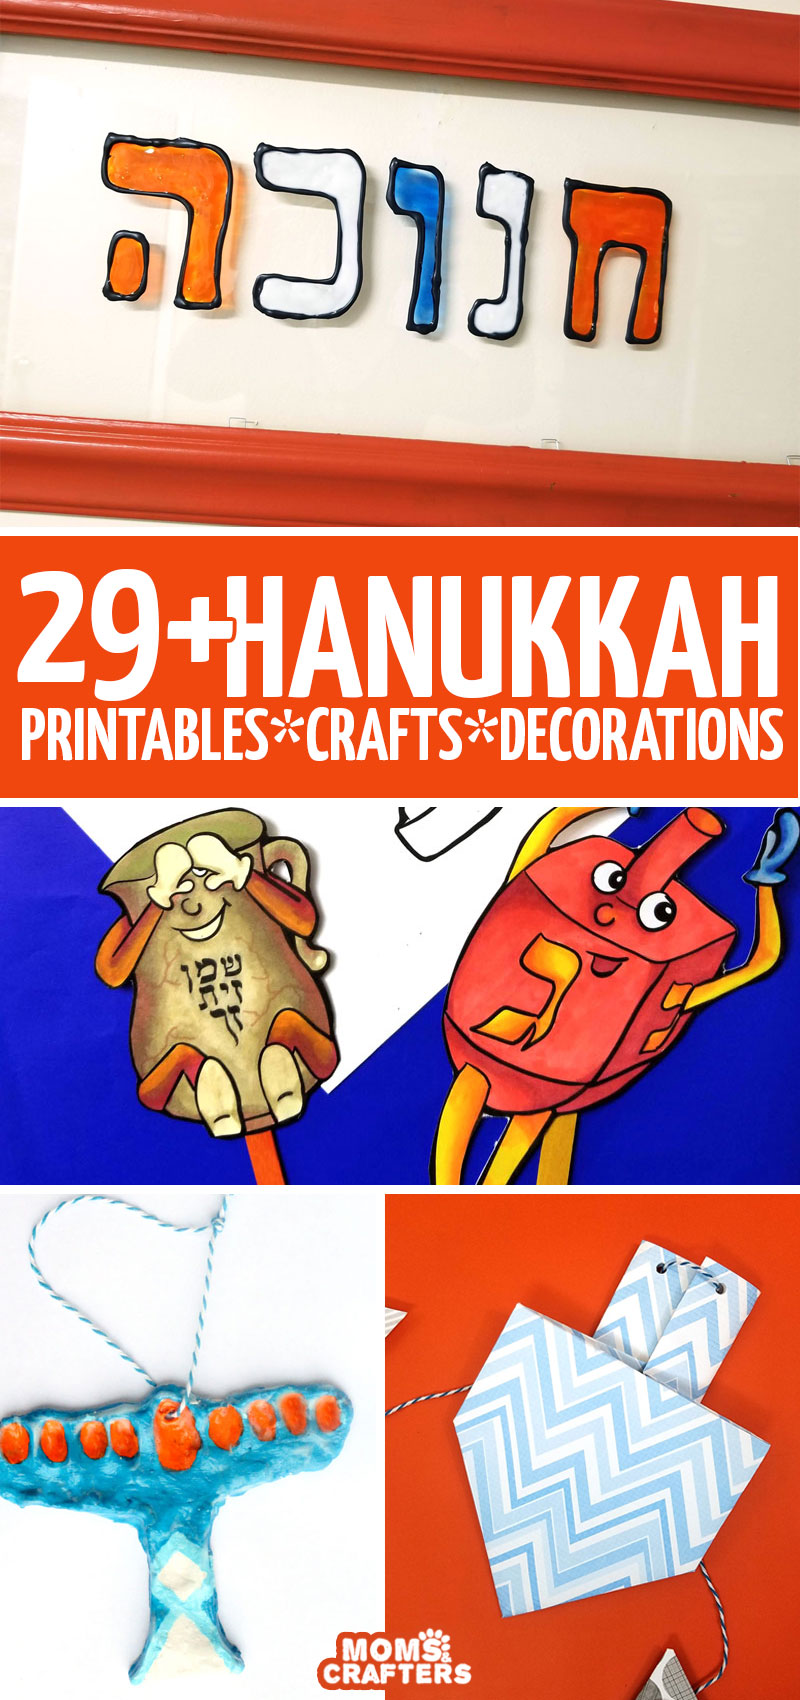 Over 30 Hanukkah crafts and ideas! This huge list includes free printable hanukkah coloring pages for kids and adults, Chanukah crafts for preschool, kids, teens ,and grown-ups, Hanukkah decorations, and more!